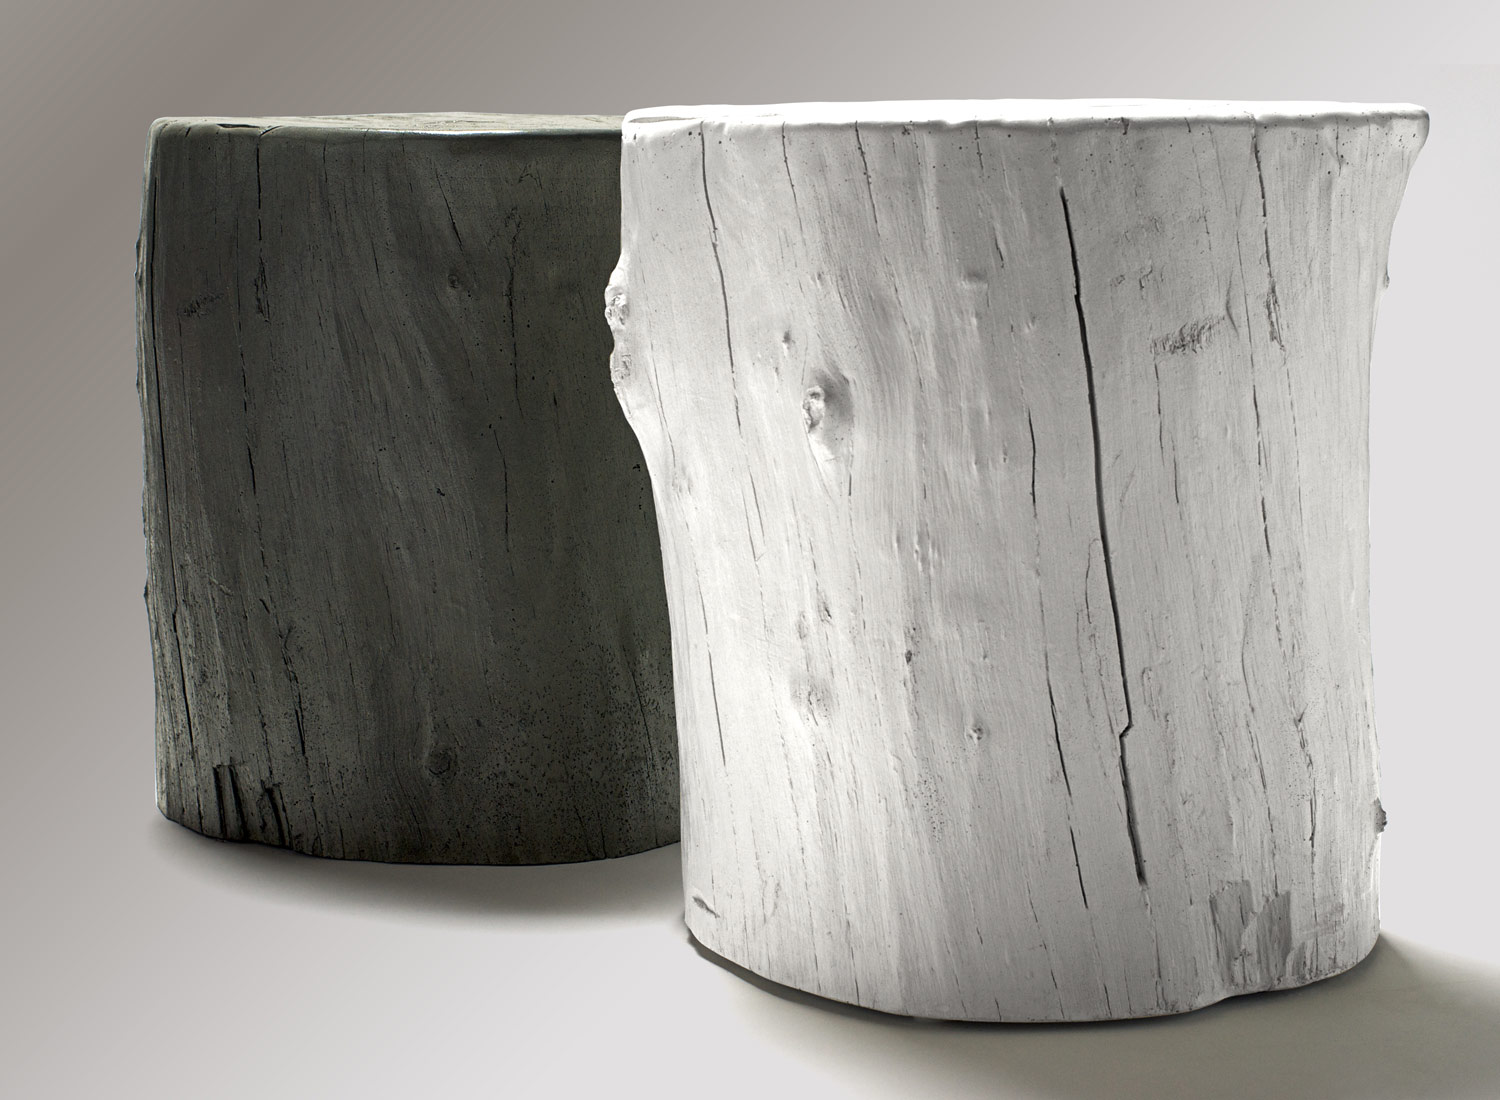 2 concrete knotty stools, which are concrete stools or tables made from forms taken from real trees